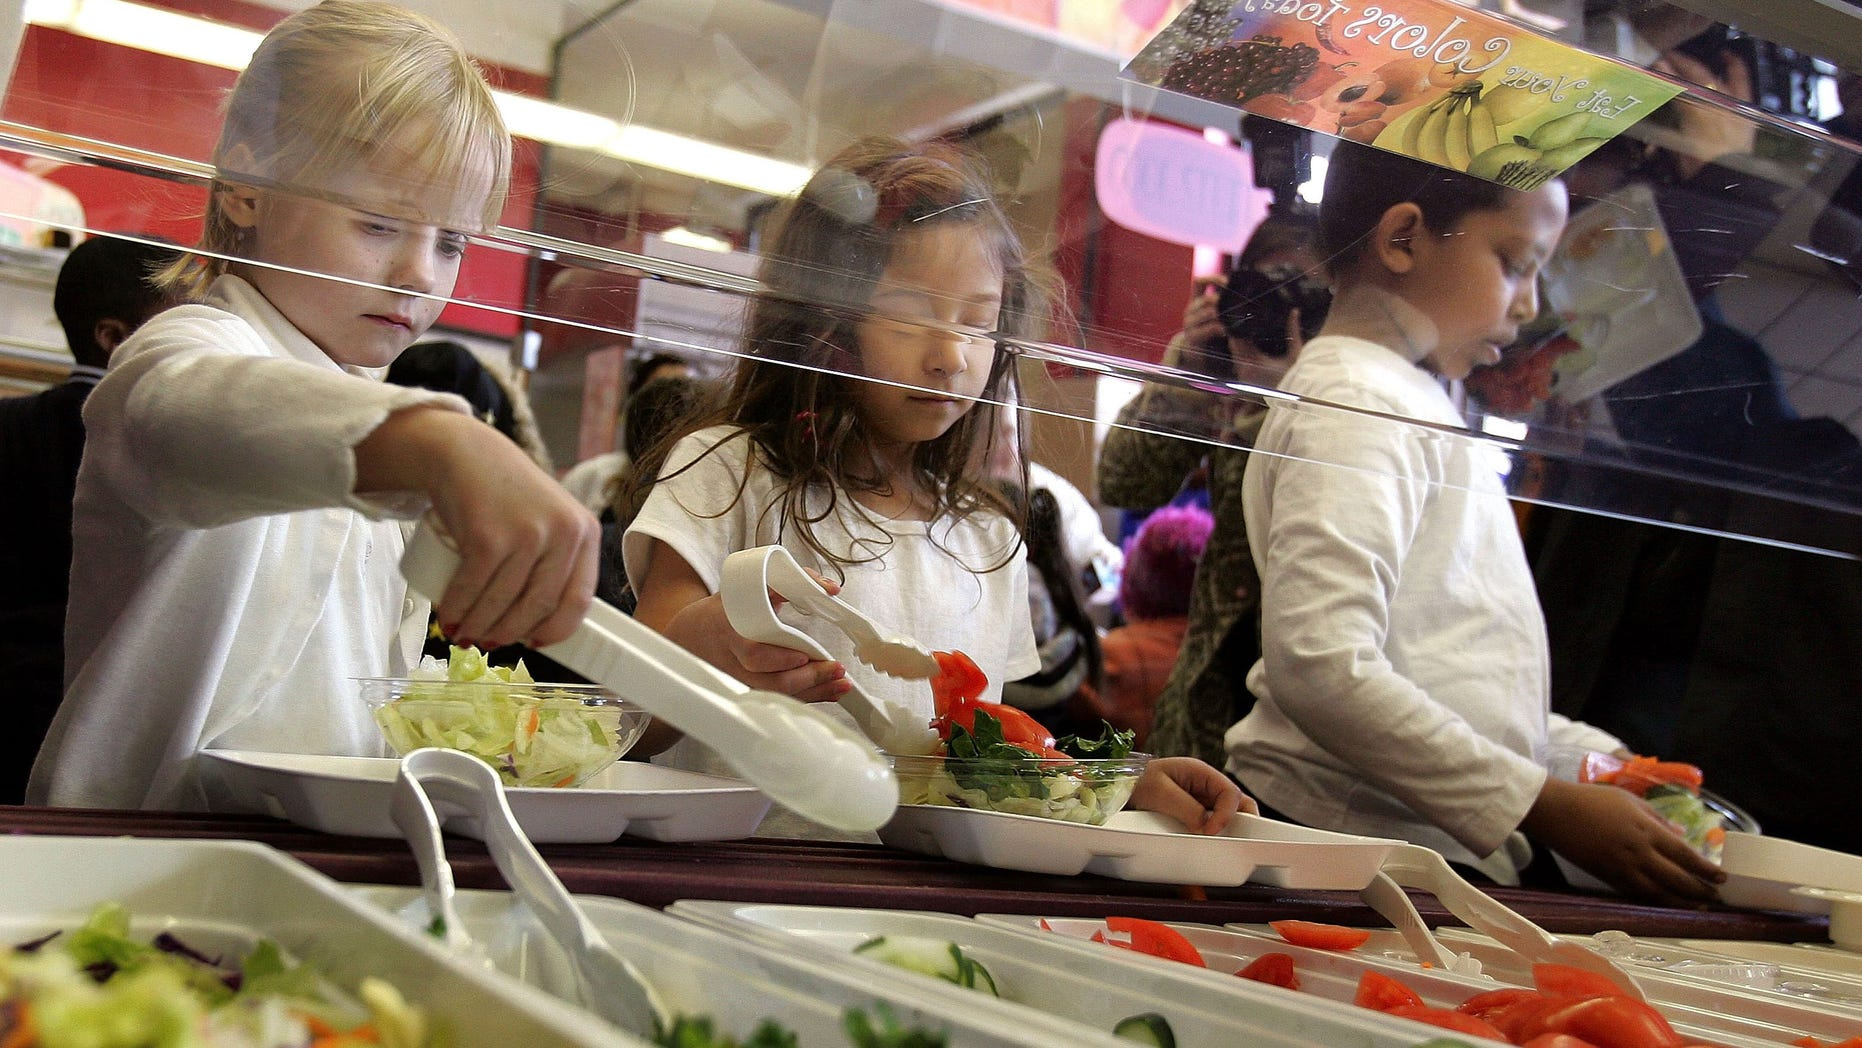 """CHICAGO - MARCH 20:  Students at Nettelhorst Elementary School, on lunch, dig into a salad bar in the school's lunchroom March 20, 2006 in Chicago, Illinois. U.S. Senator Dick Durbin (D-IL) stopped by the school to visit the new lunch program called, """"Cool Foods,"""" as part of the Healthy Schools Campaign. Nettelhorst is one of three Chicago public schools participating in the new lunch program offering salad bars.  (Photo by Tim Boyle/Getty Images)"""